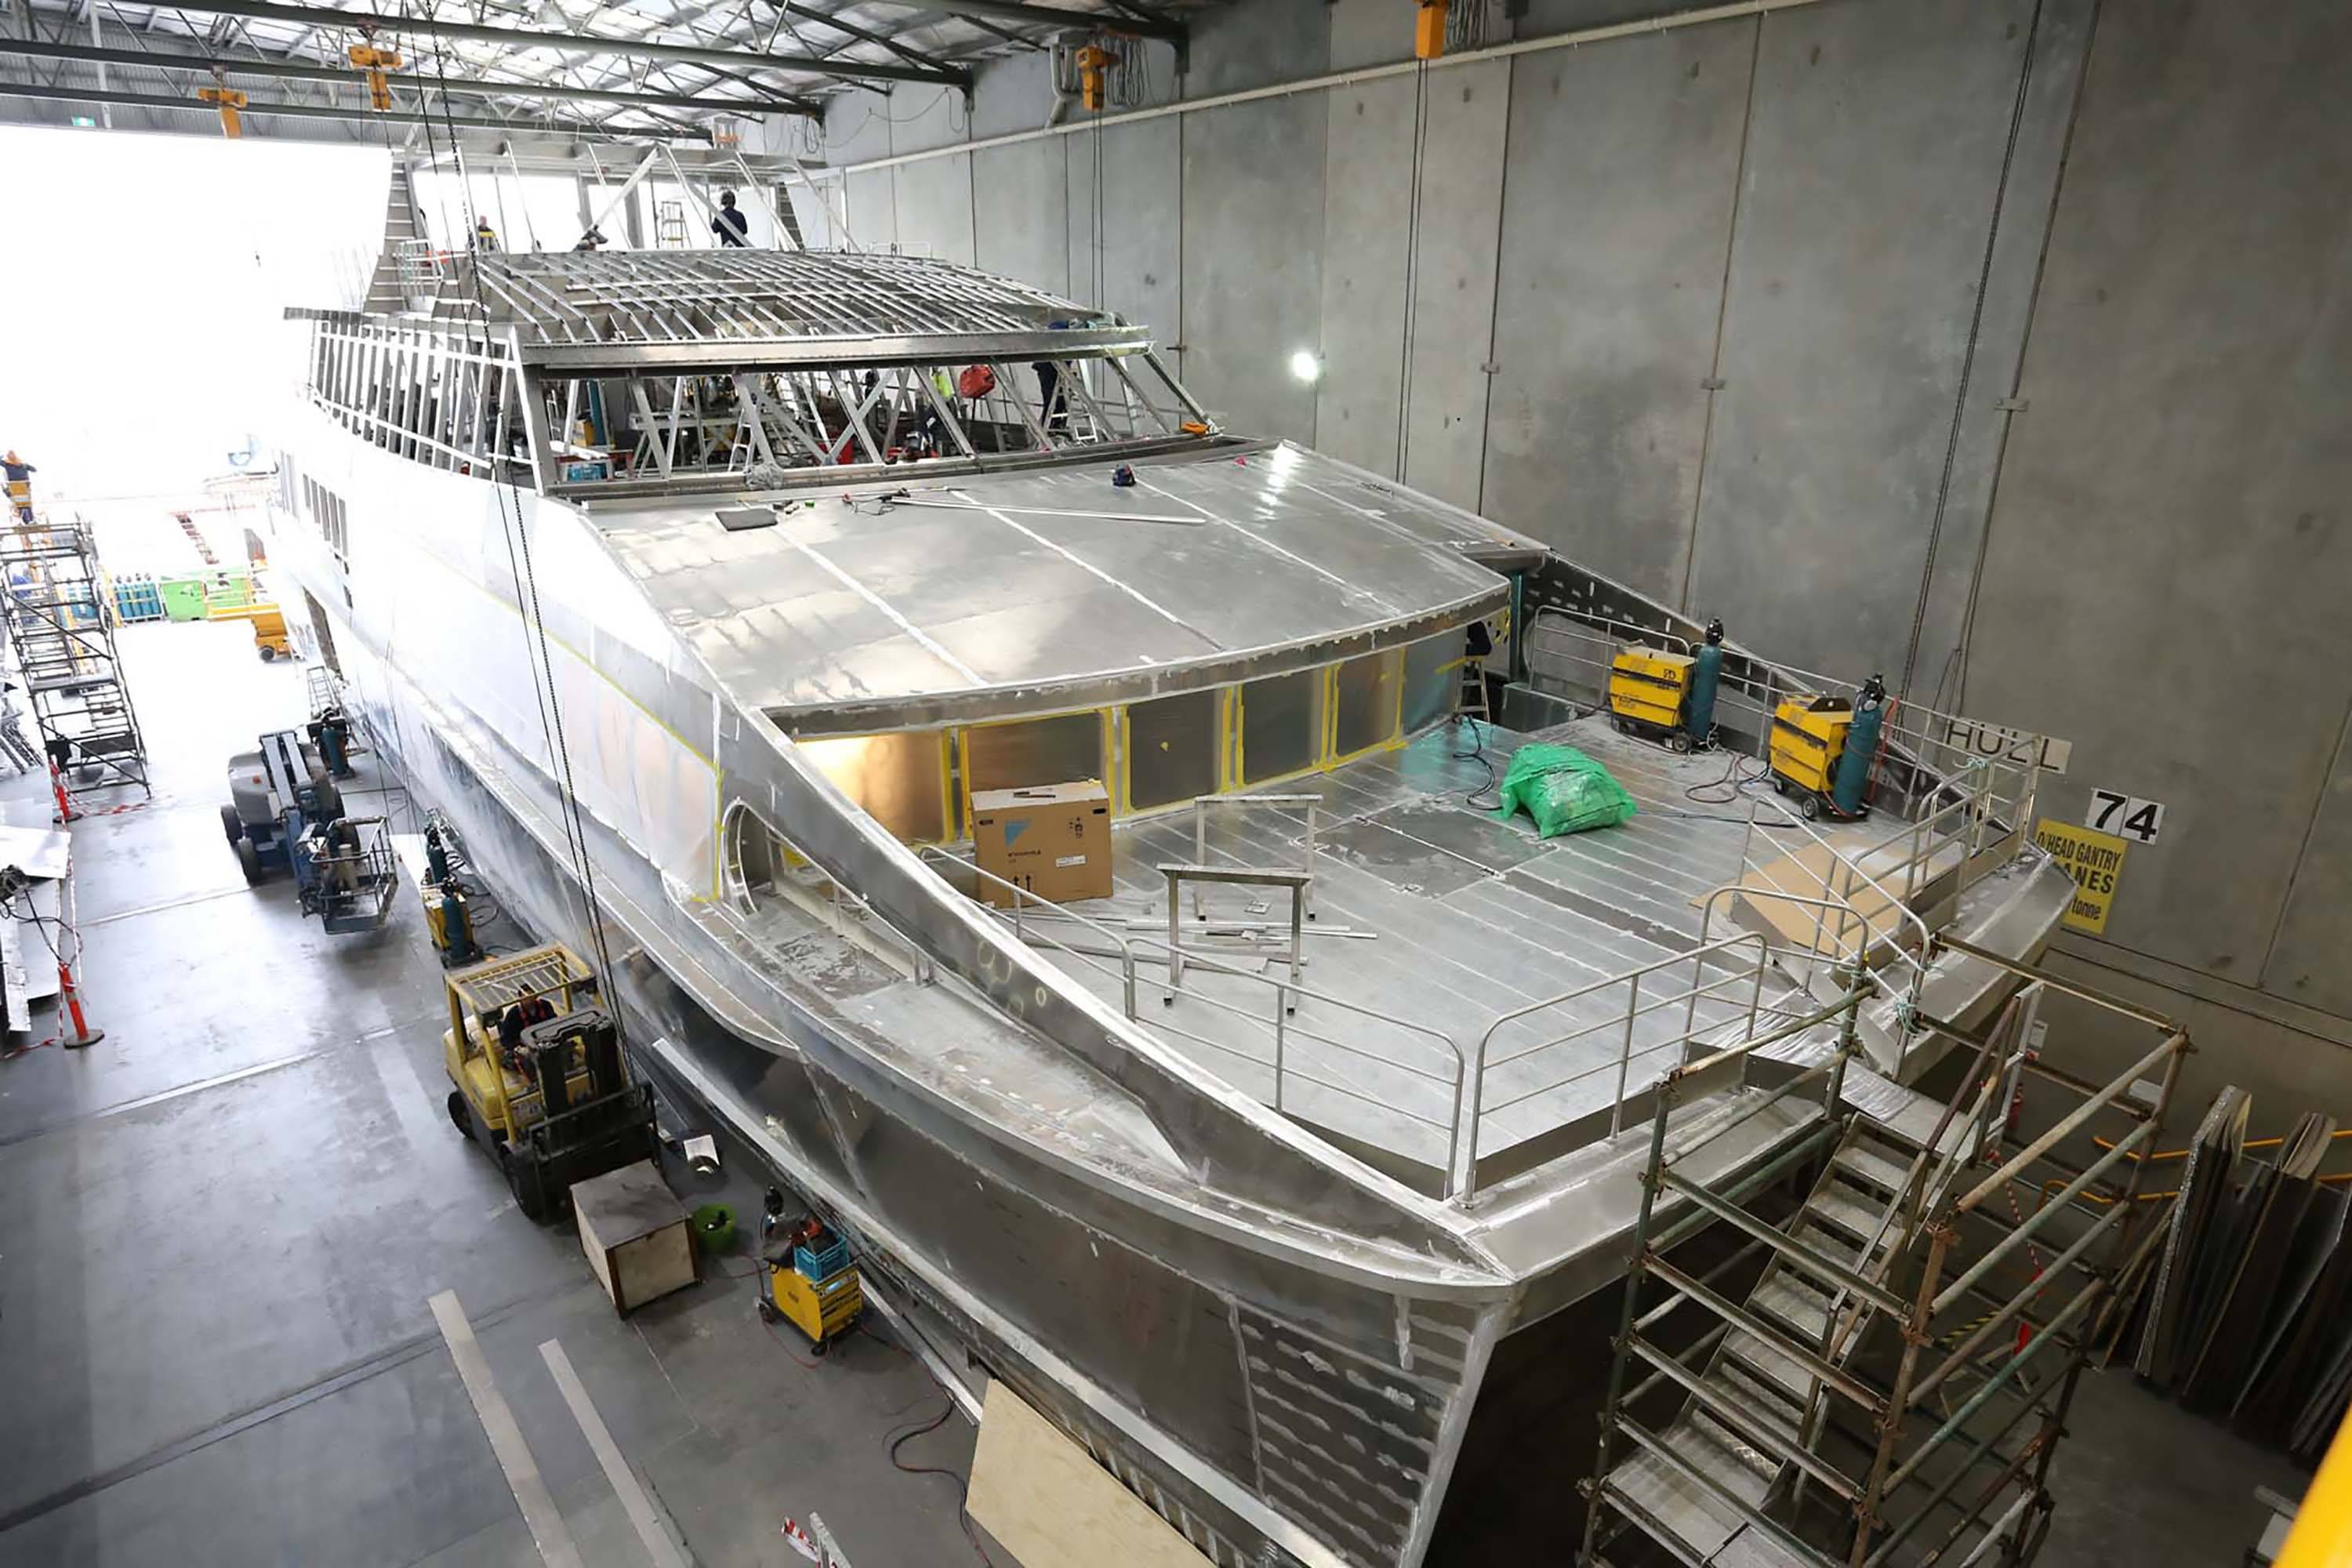 RDM builds new catamaran to be launched for World Heritage Cruises